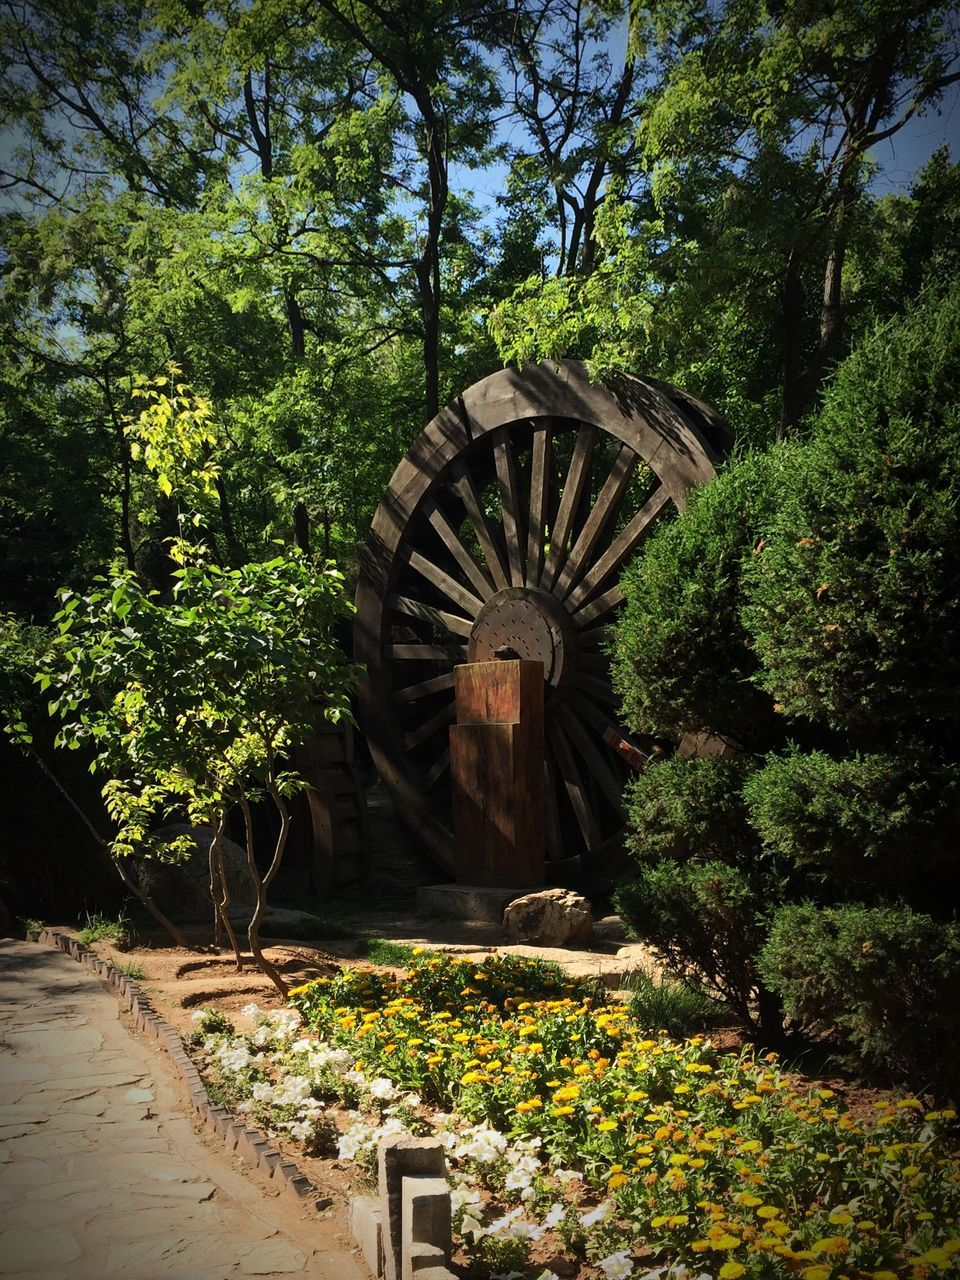 Water Wheel In Park